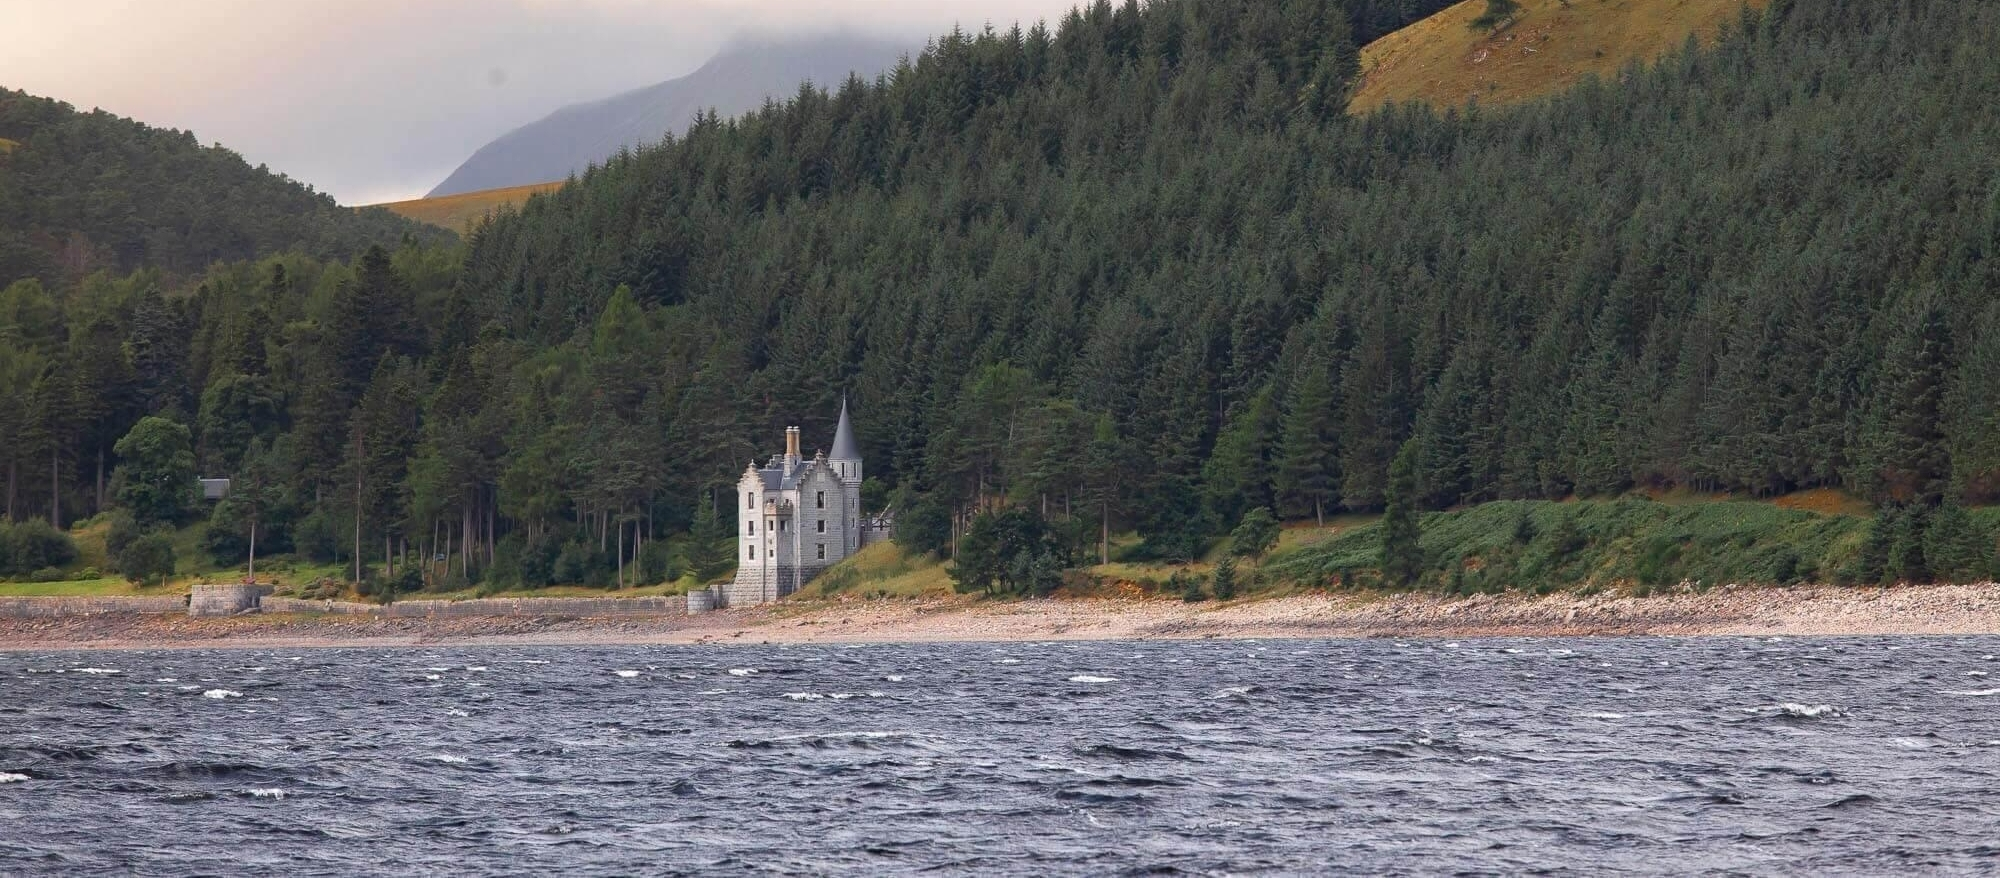 The Gate lodge on the northern shores of Loch Ericht